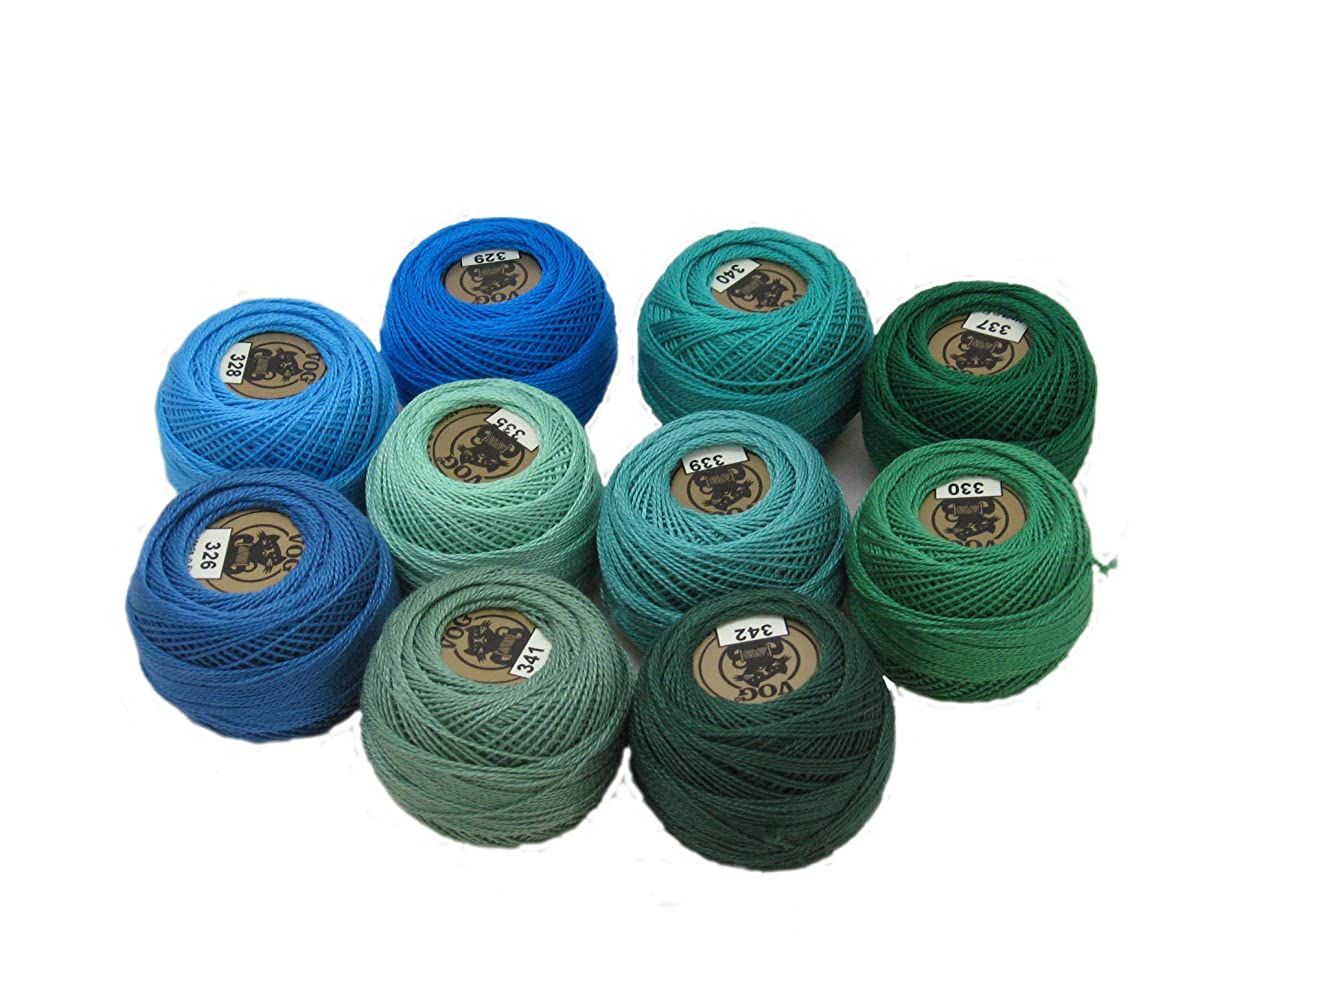 Vog Perle Cotton Size 8 Embroidery Threads - Set of 10 Balls (10gr Each) - Blue and Green Shades (column No. 5)